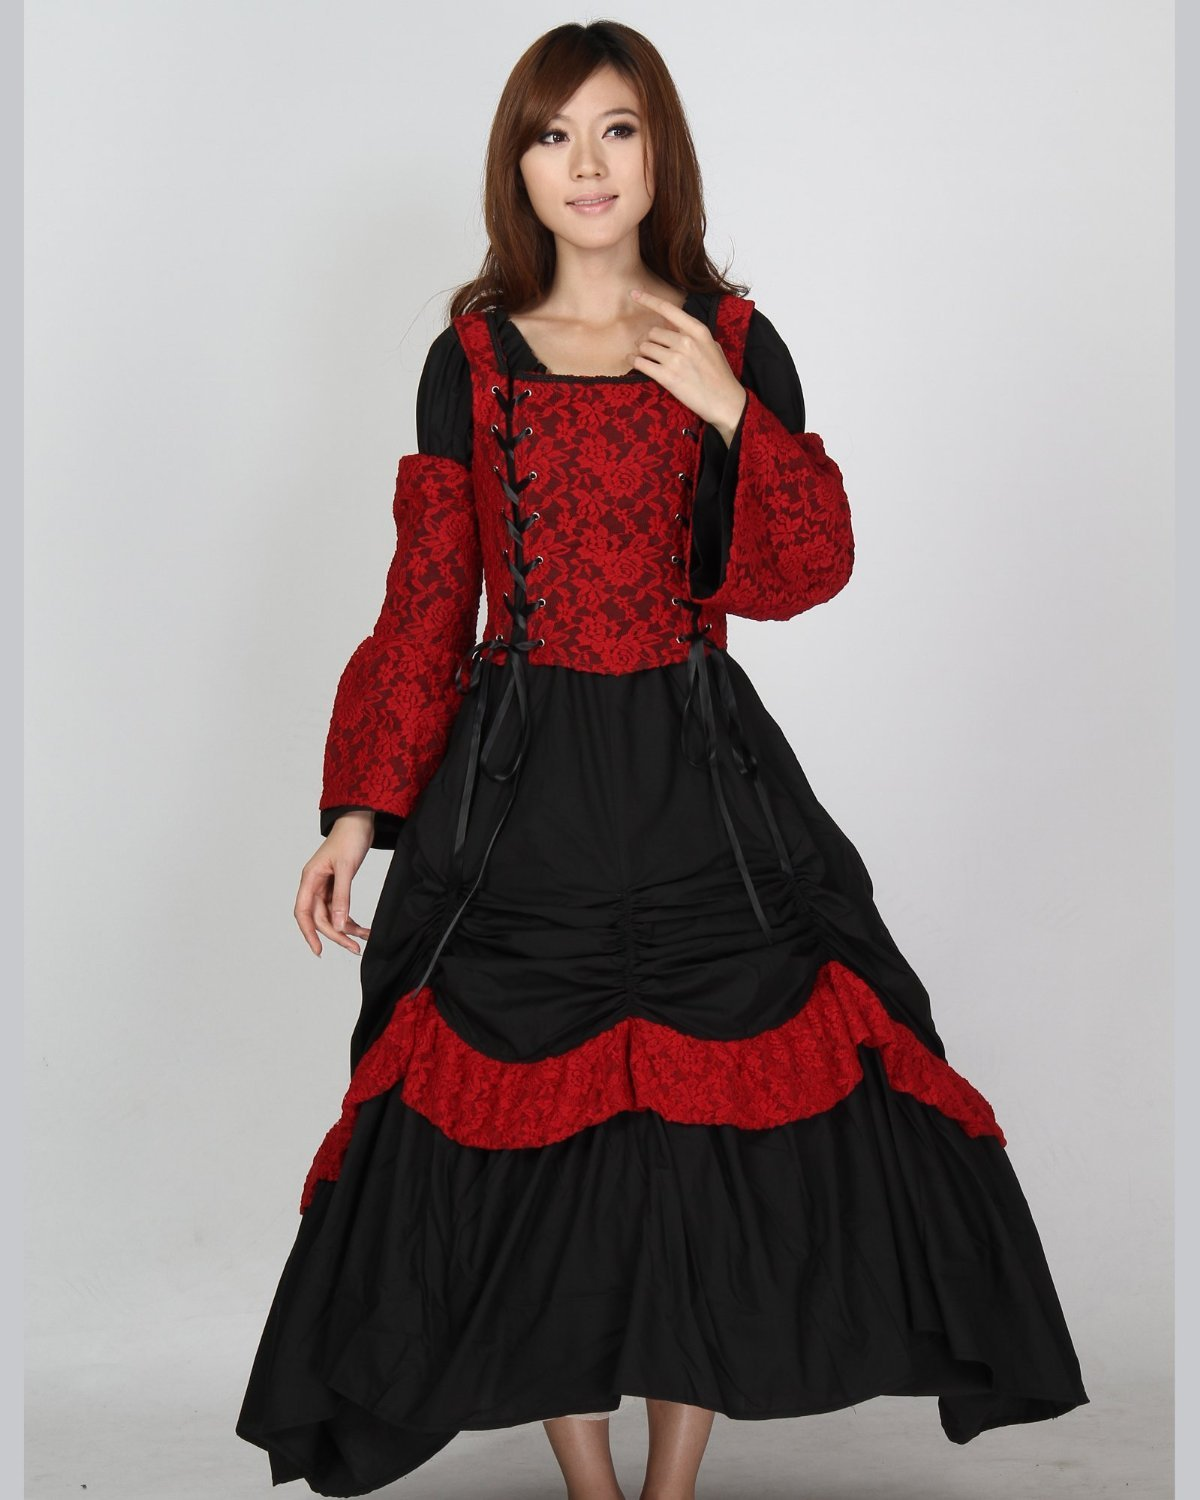 20 Gothic Corset Puffy Prom Dresses Pictures And Ideas On Carver Museum